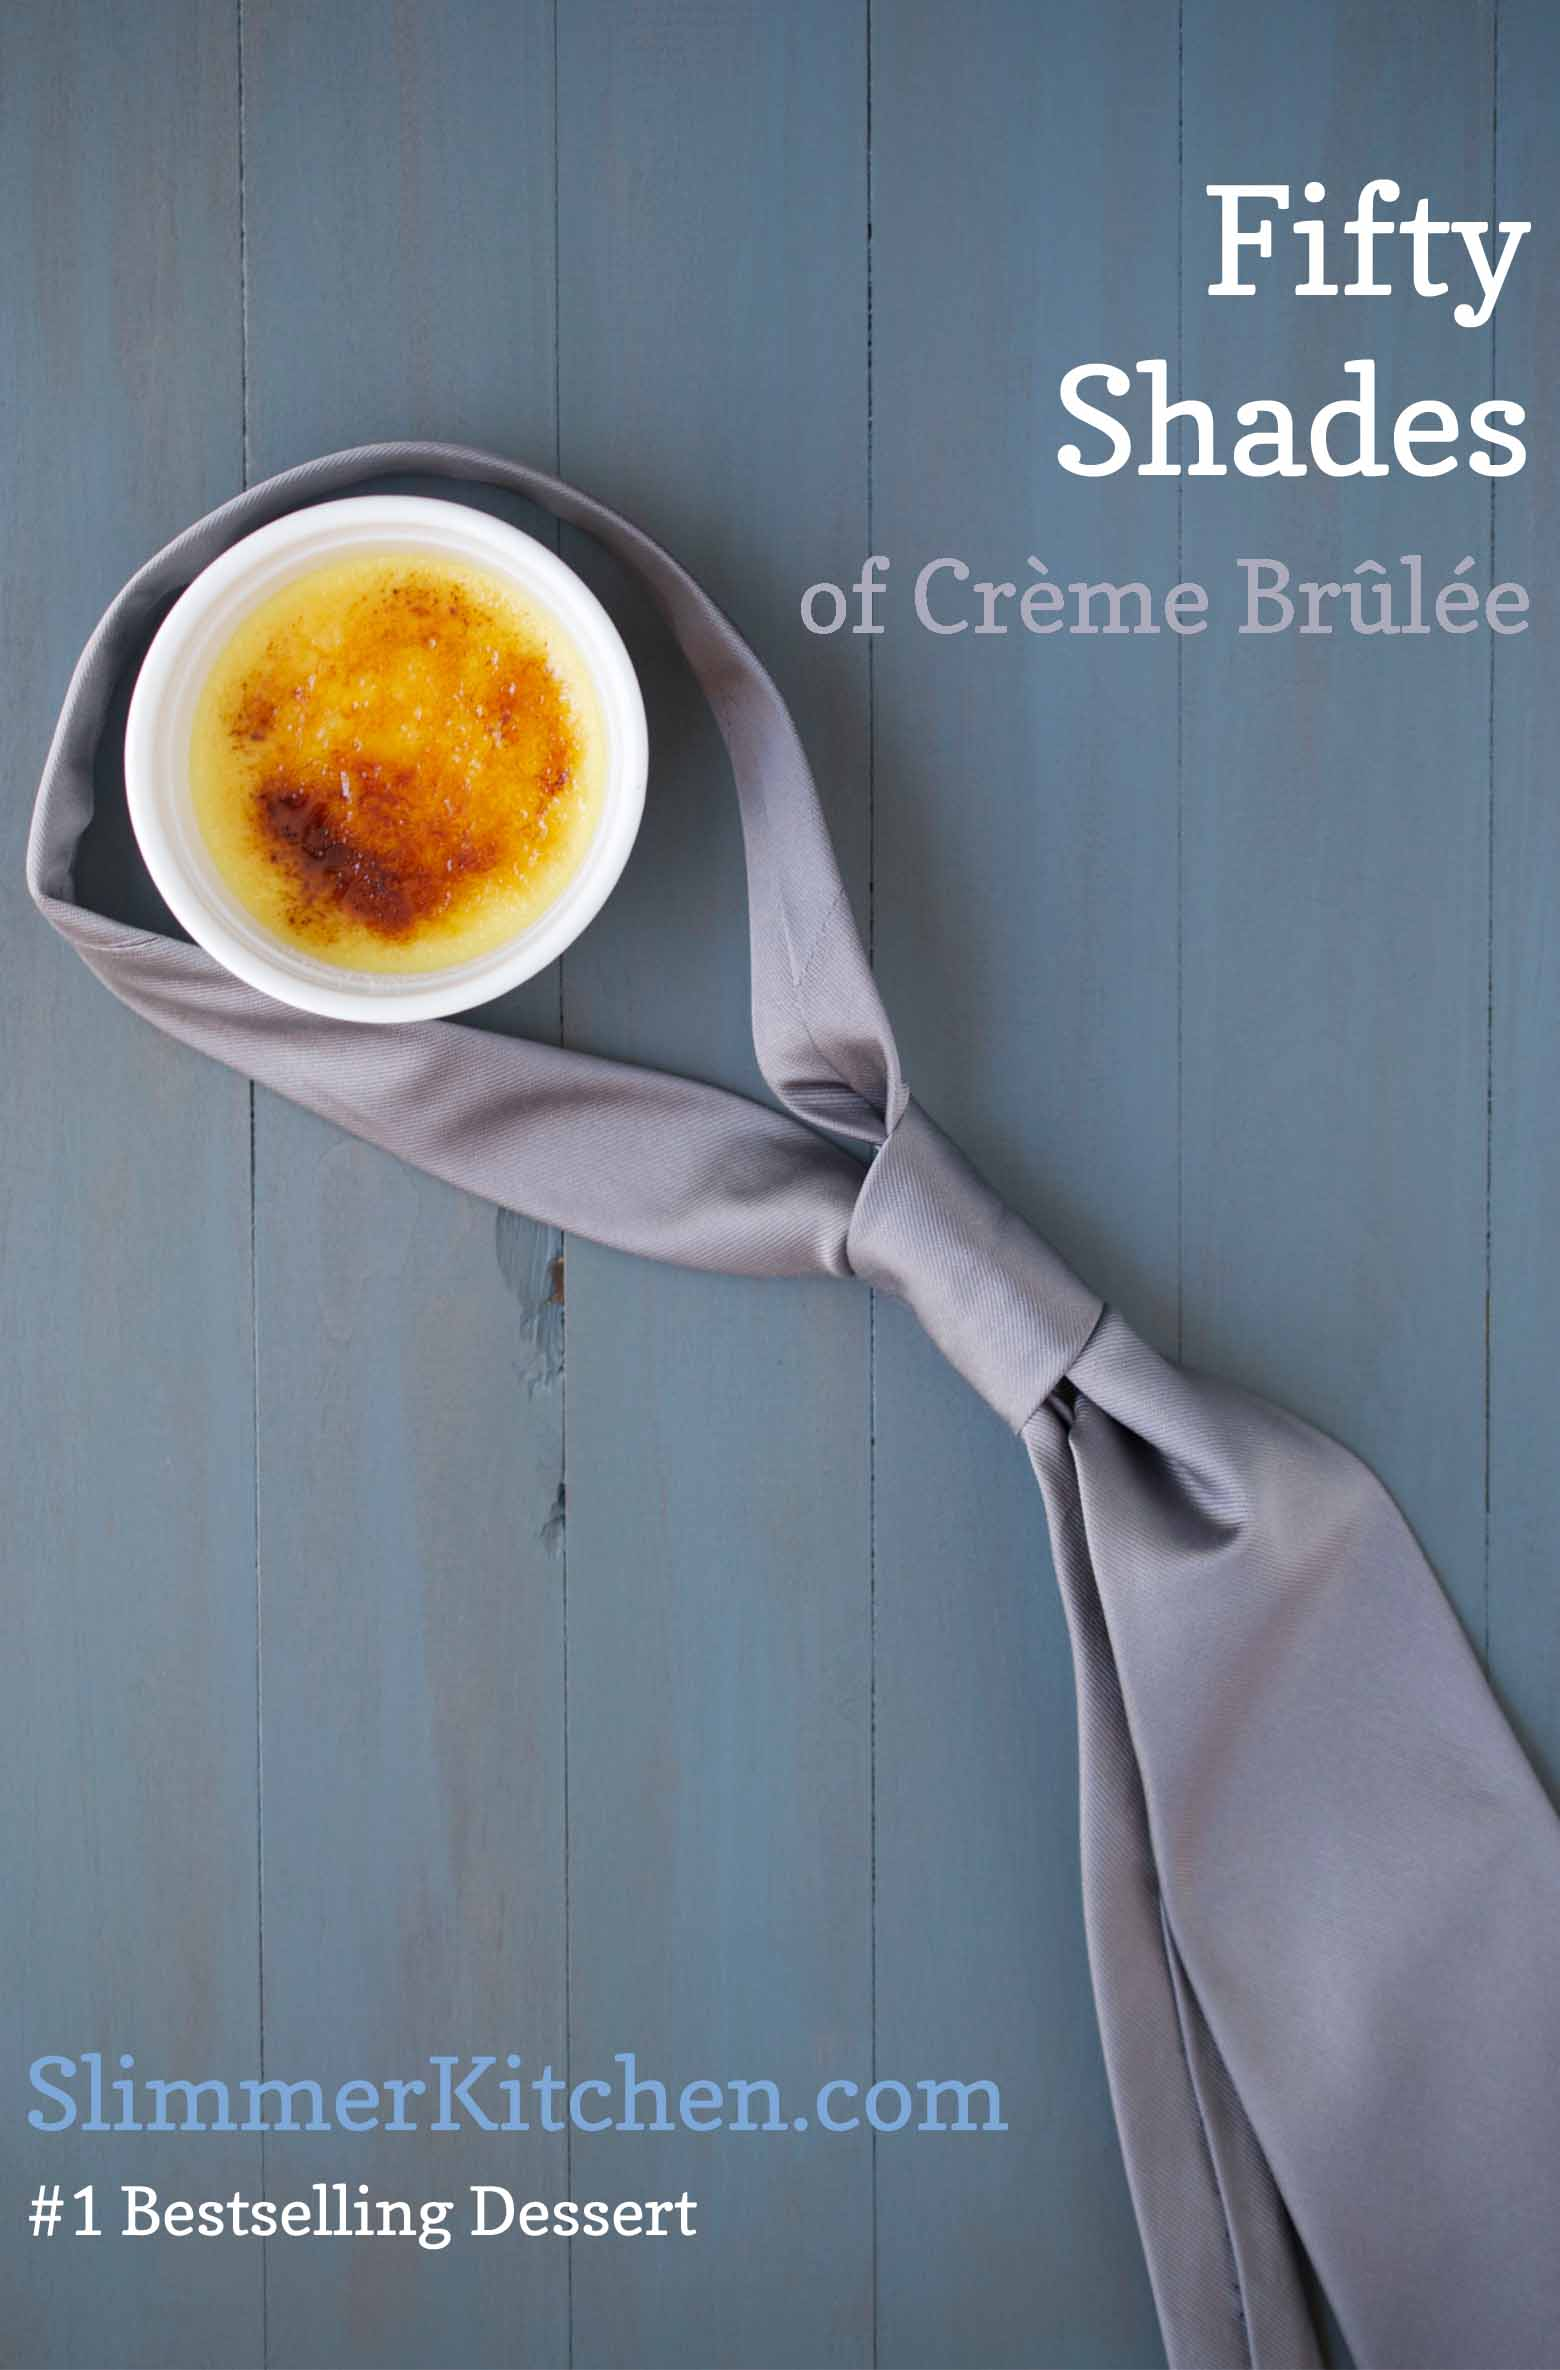 Fifty-Shades-of-Creme-Brulee.jpg